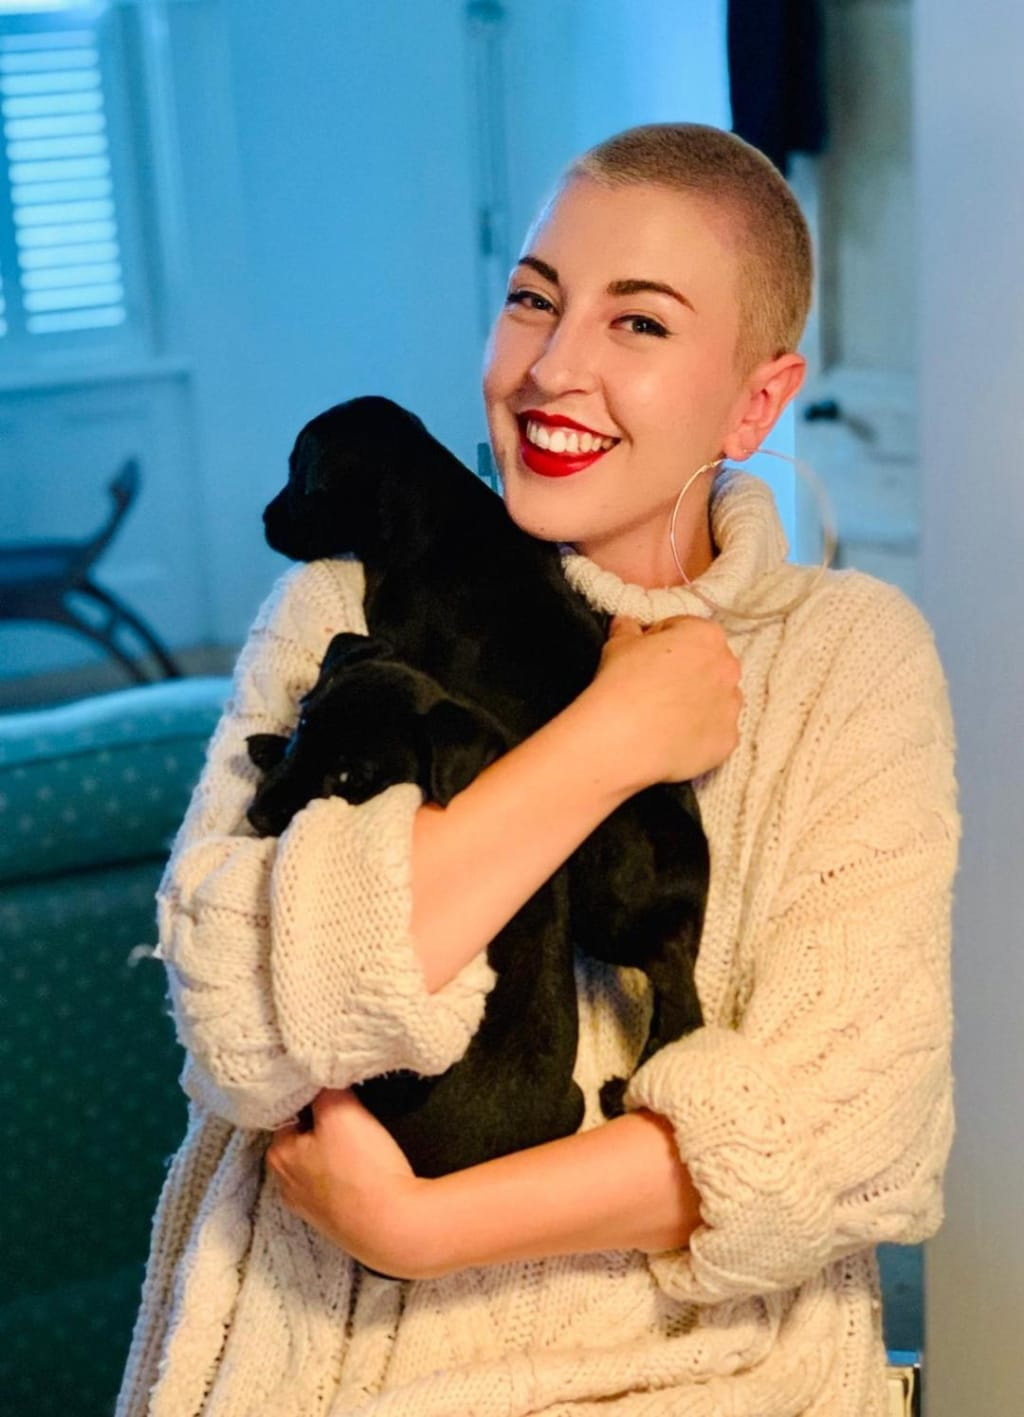 7 Things I learned when I shaved my head